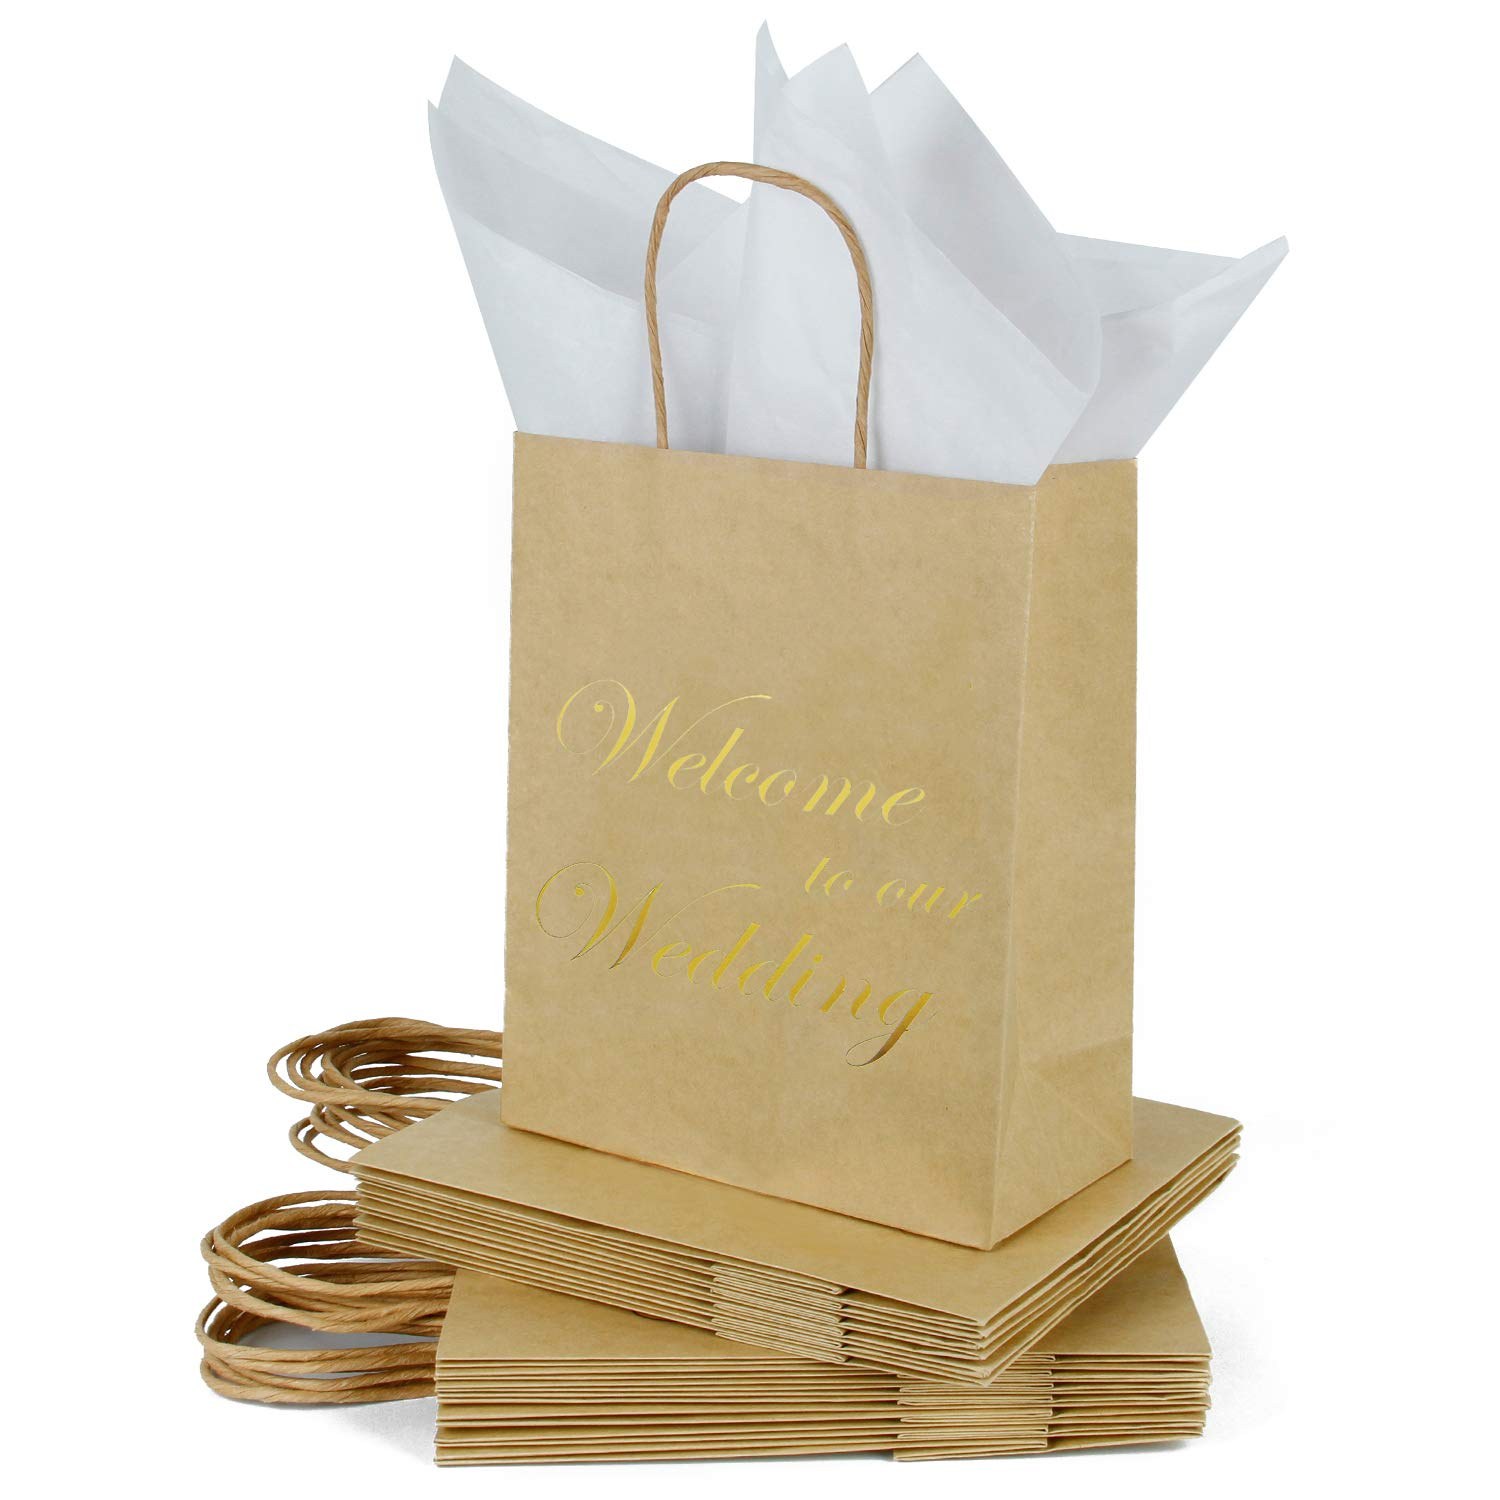 Loveinside Medium Kraft Gift Bags-Welcome to Our Wedding Gold Foil Brown Paper Gift Bag with Tissue Paper - Wedding,Party Favor,Bridesmaids Gift-12Pack -8'' X 4'' X 10''